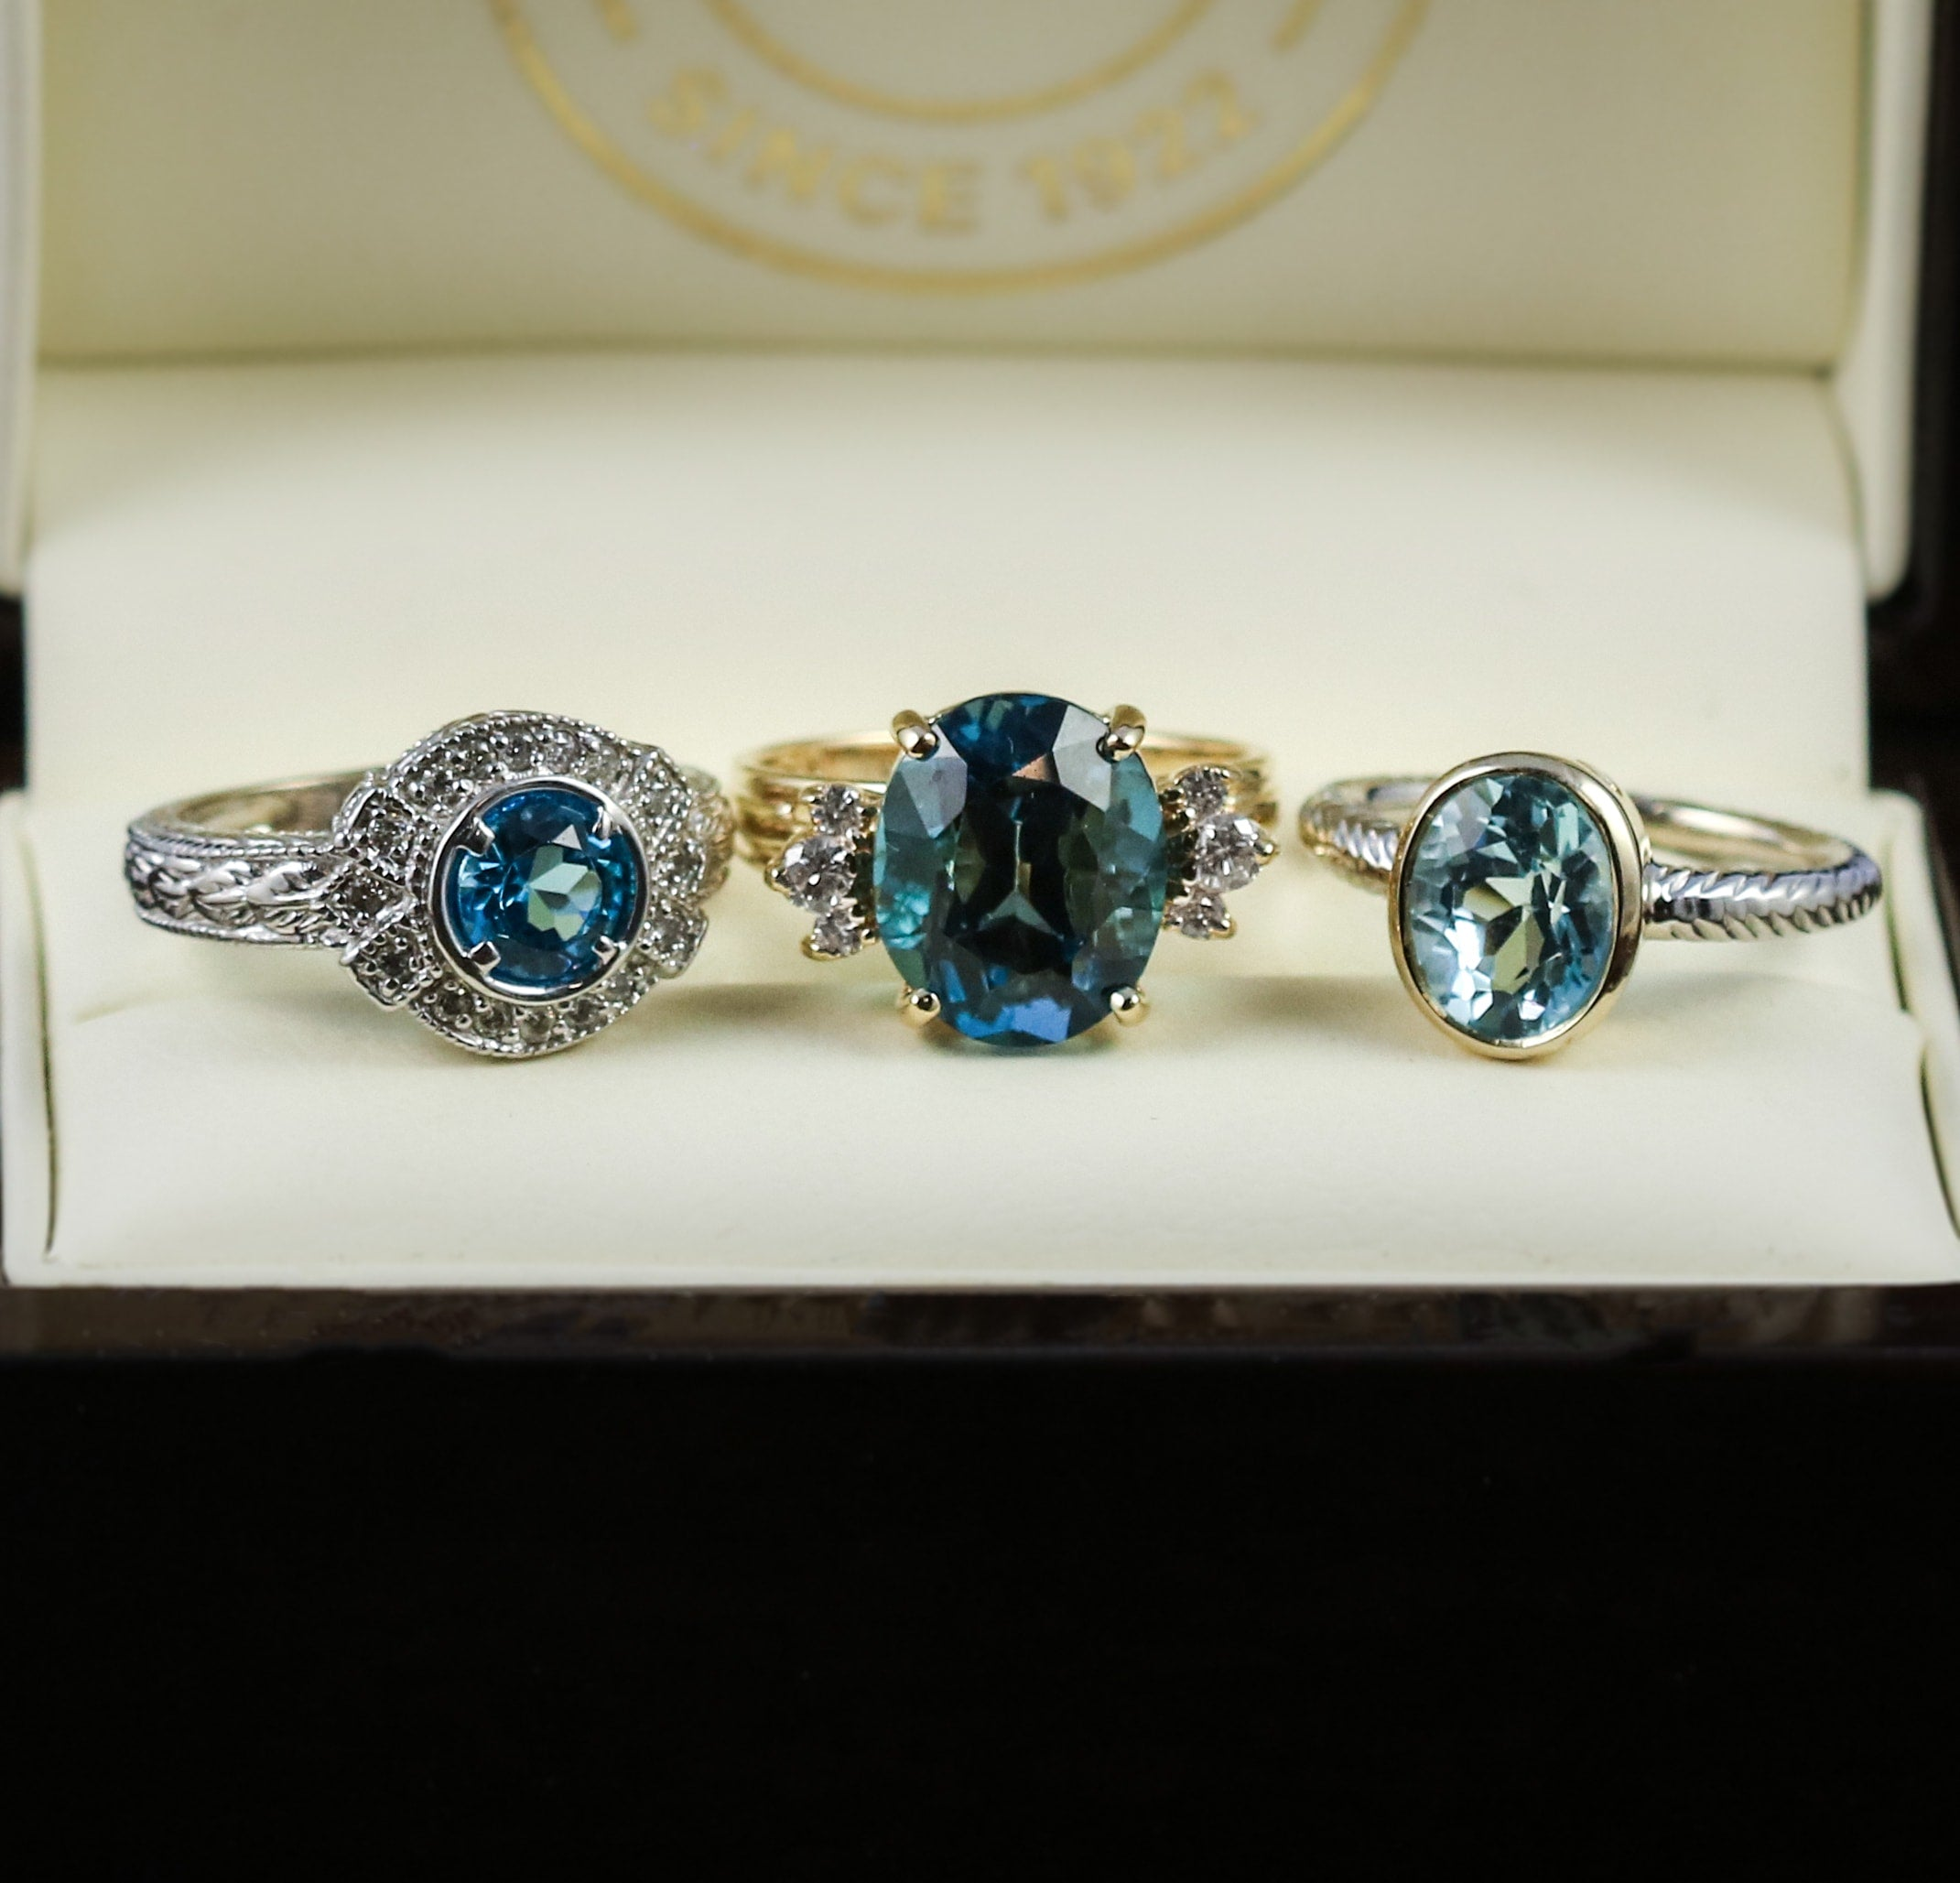 Blue topaz and diamond rings